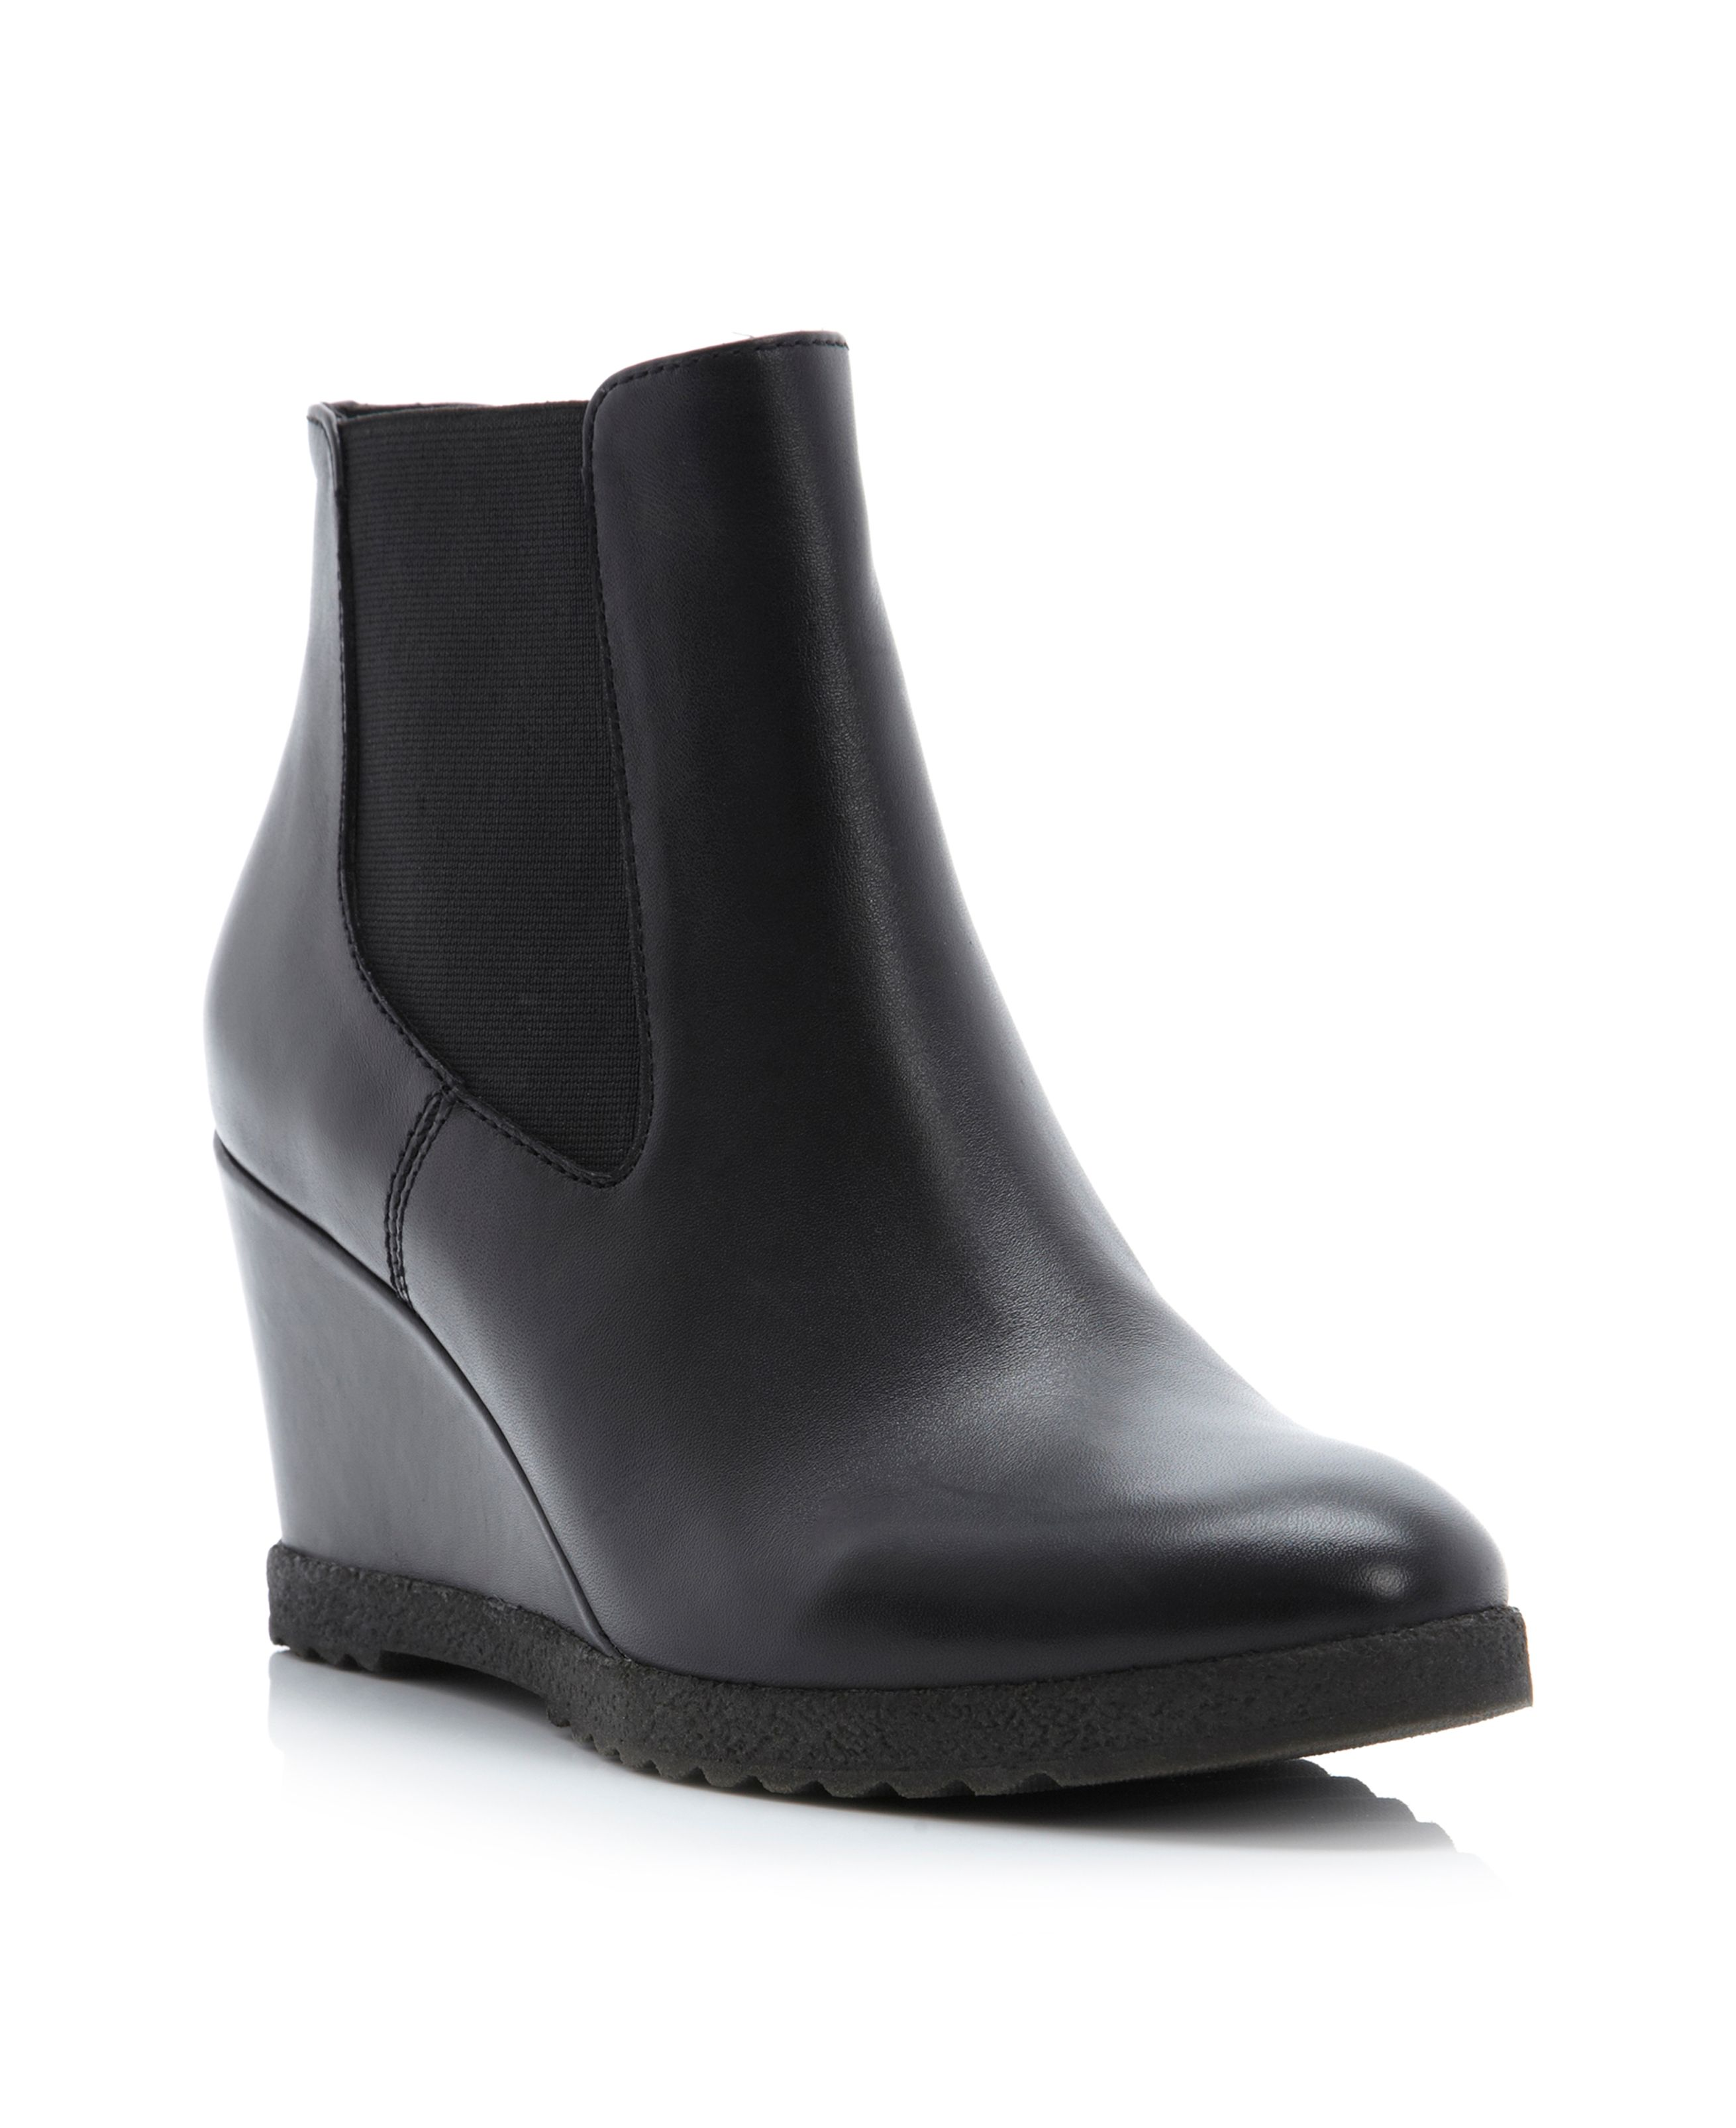 Pontin wedge chelsea low boots